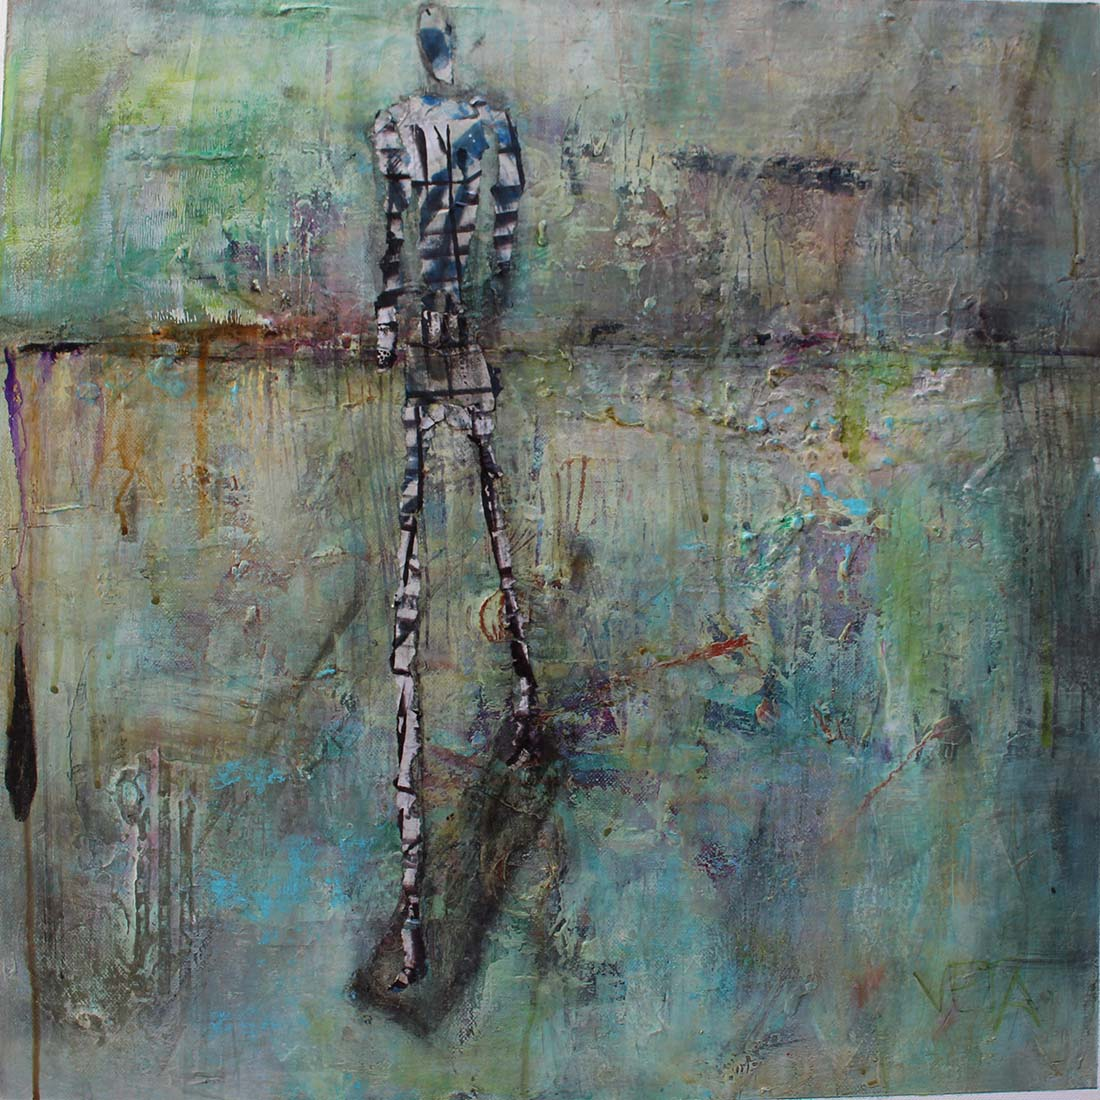 Hommage to AG 600x600 Mixed Media sold